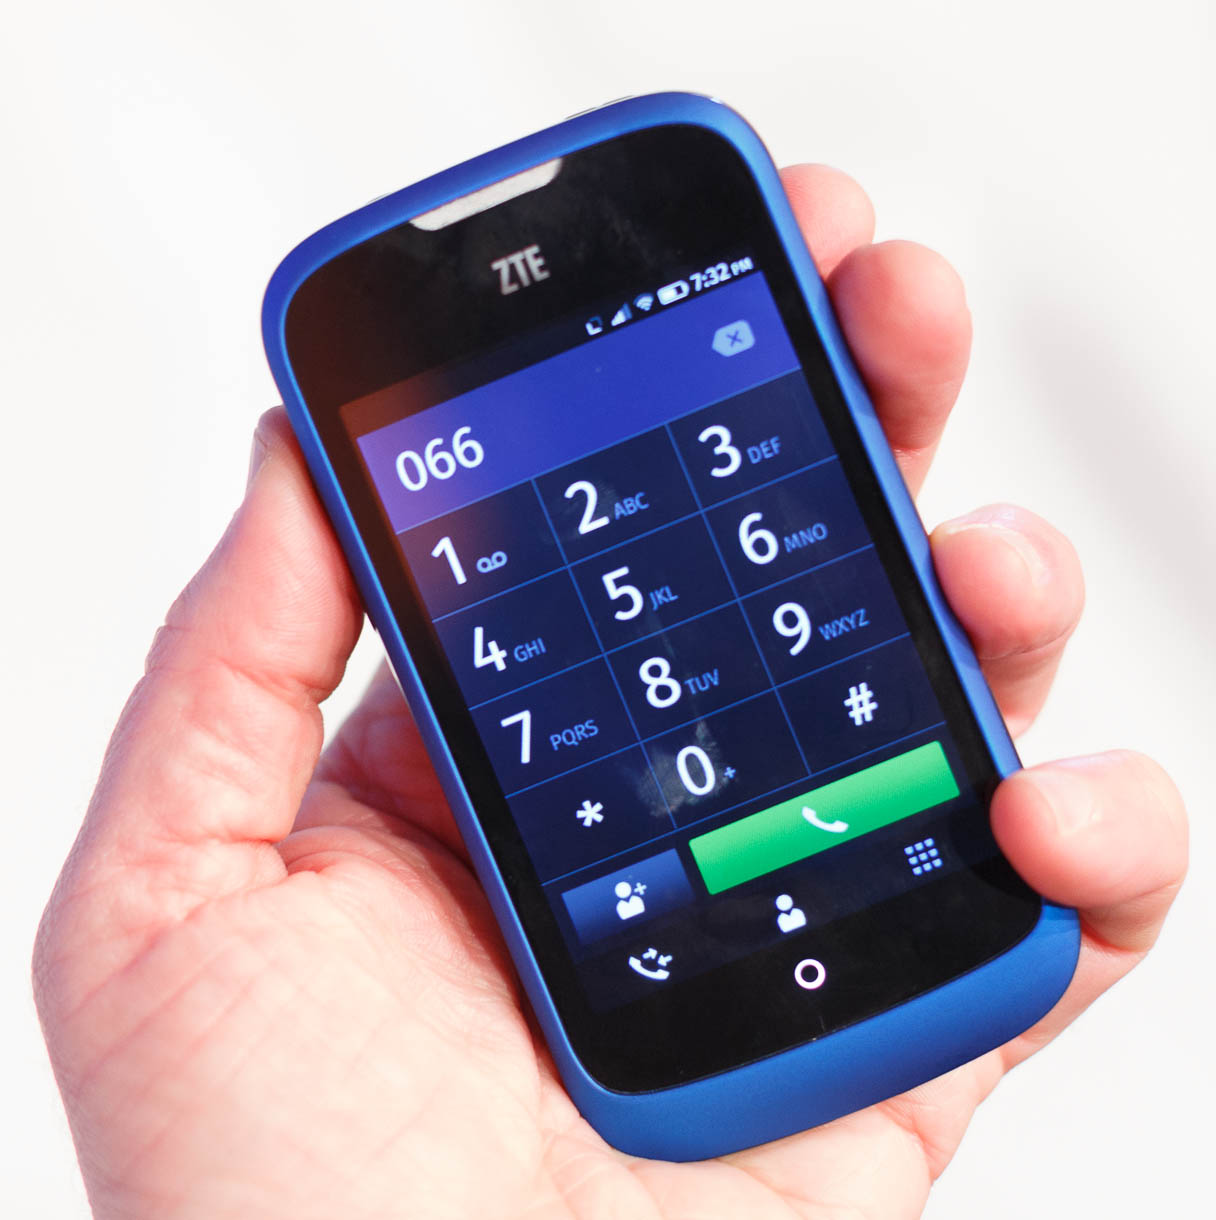 The ZTE Open feature a traditional phone dialer, with tabs along the bottom to access recent calls, contacts, and the dialpad.